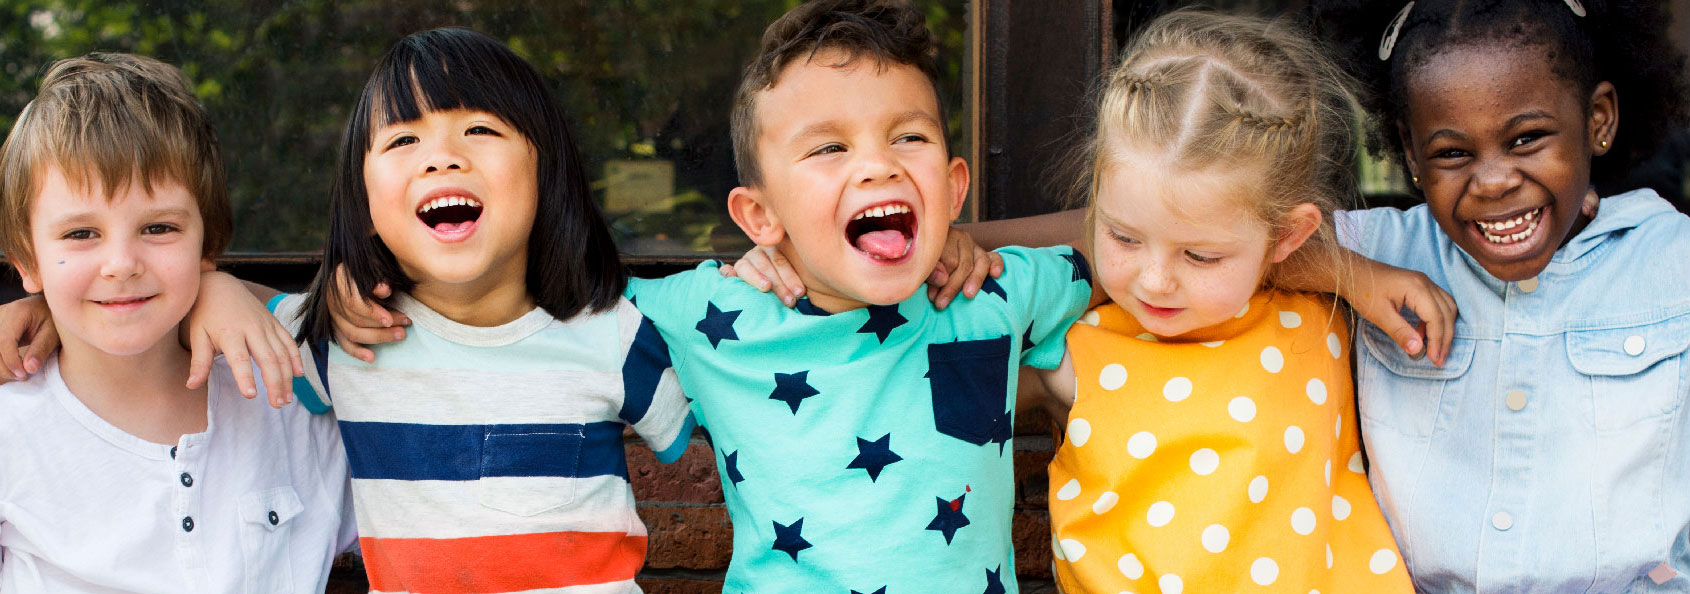 Children smiling and laughing sitting on a brick wall outside in colorful clothing.